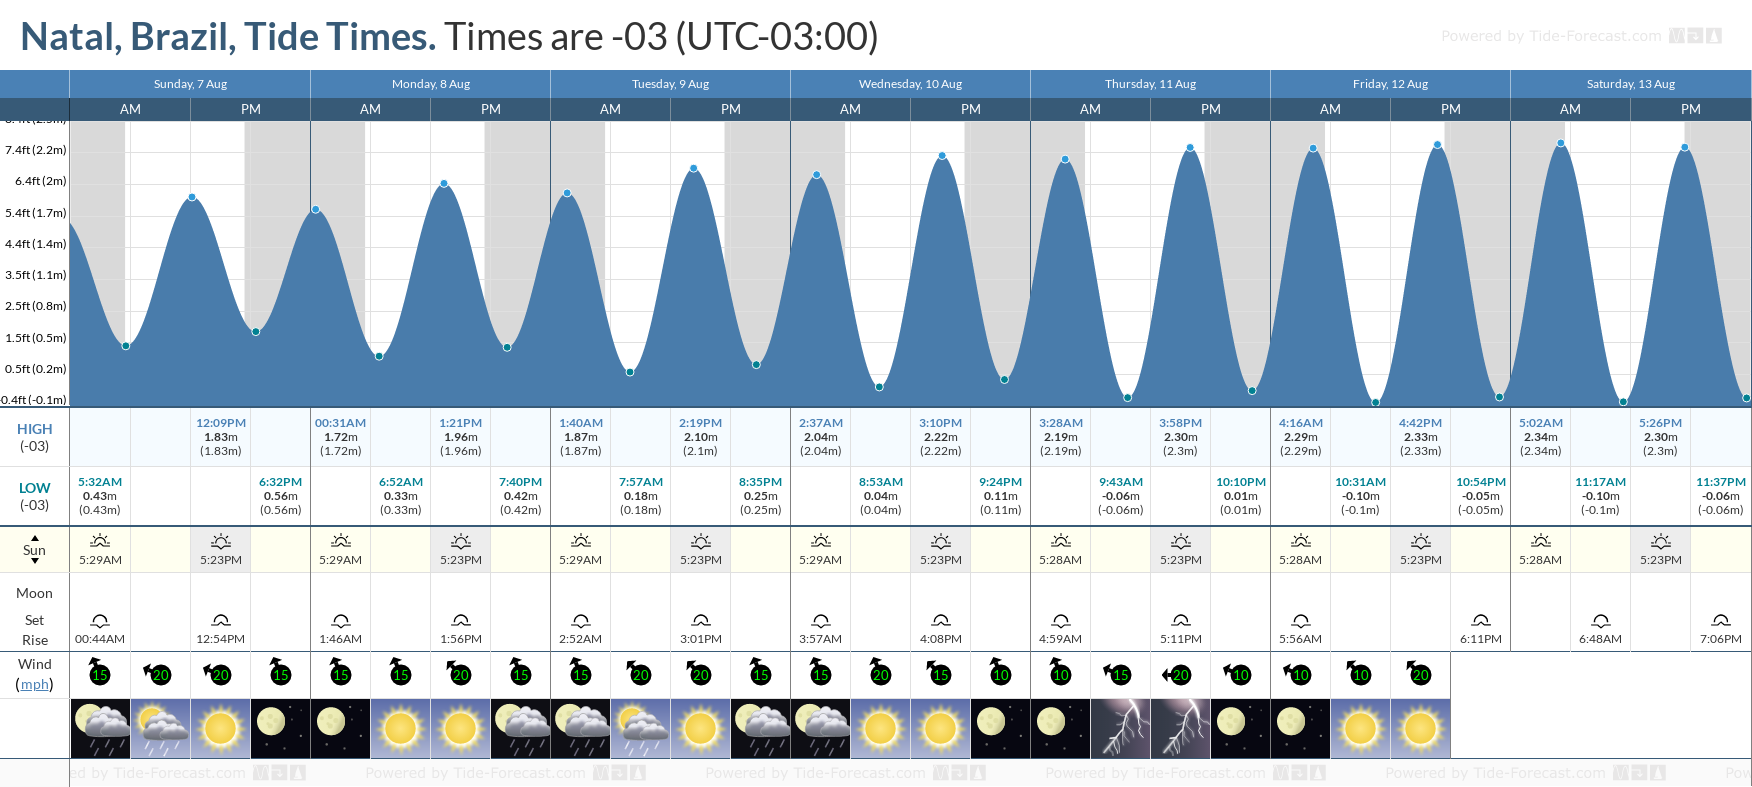 Natal, Brazil Tide Chart including high and low tide tide times for the next 7 days